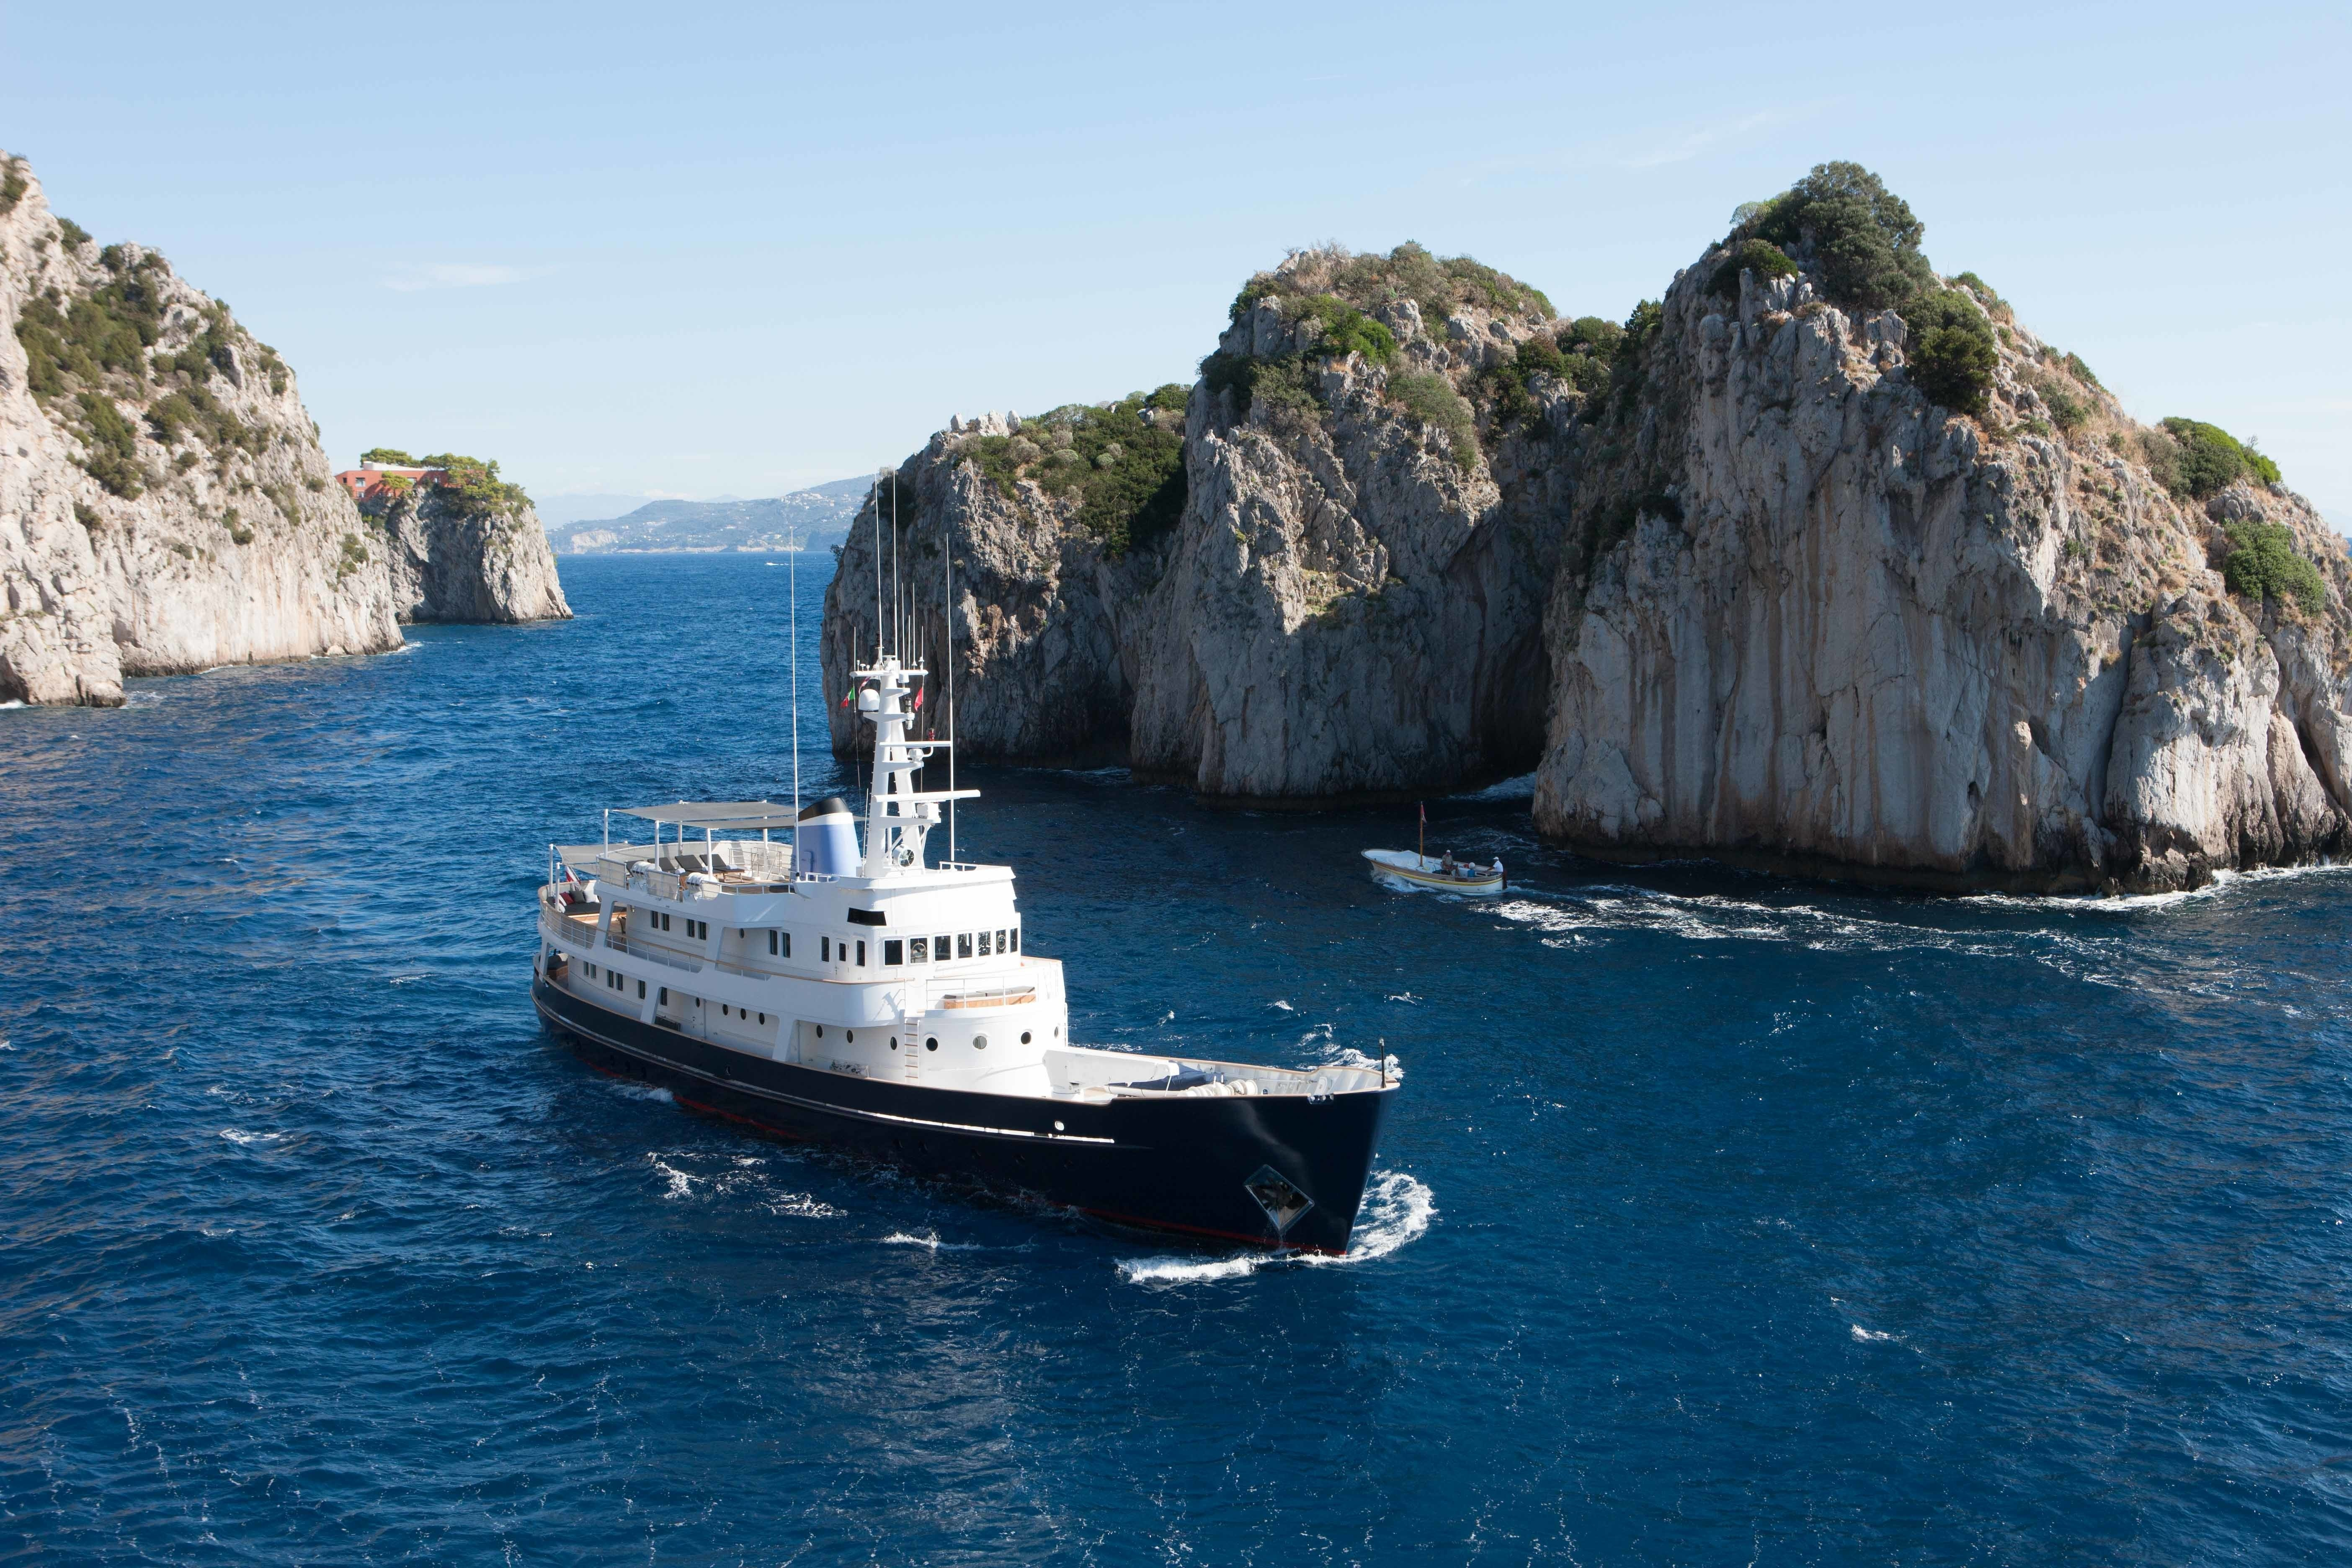 ICE LADY available for charter in the Western Mediterranean